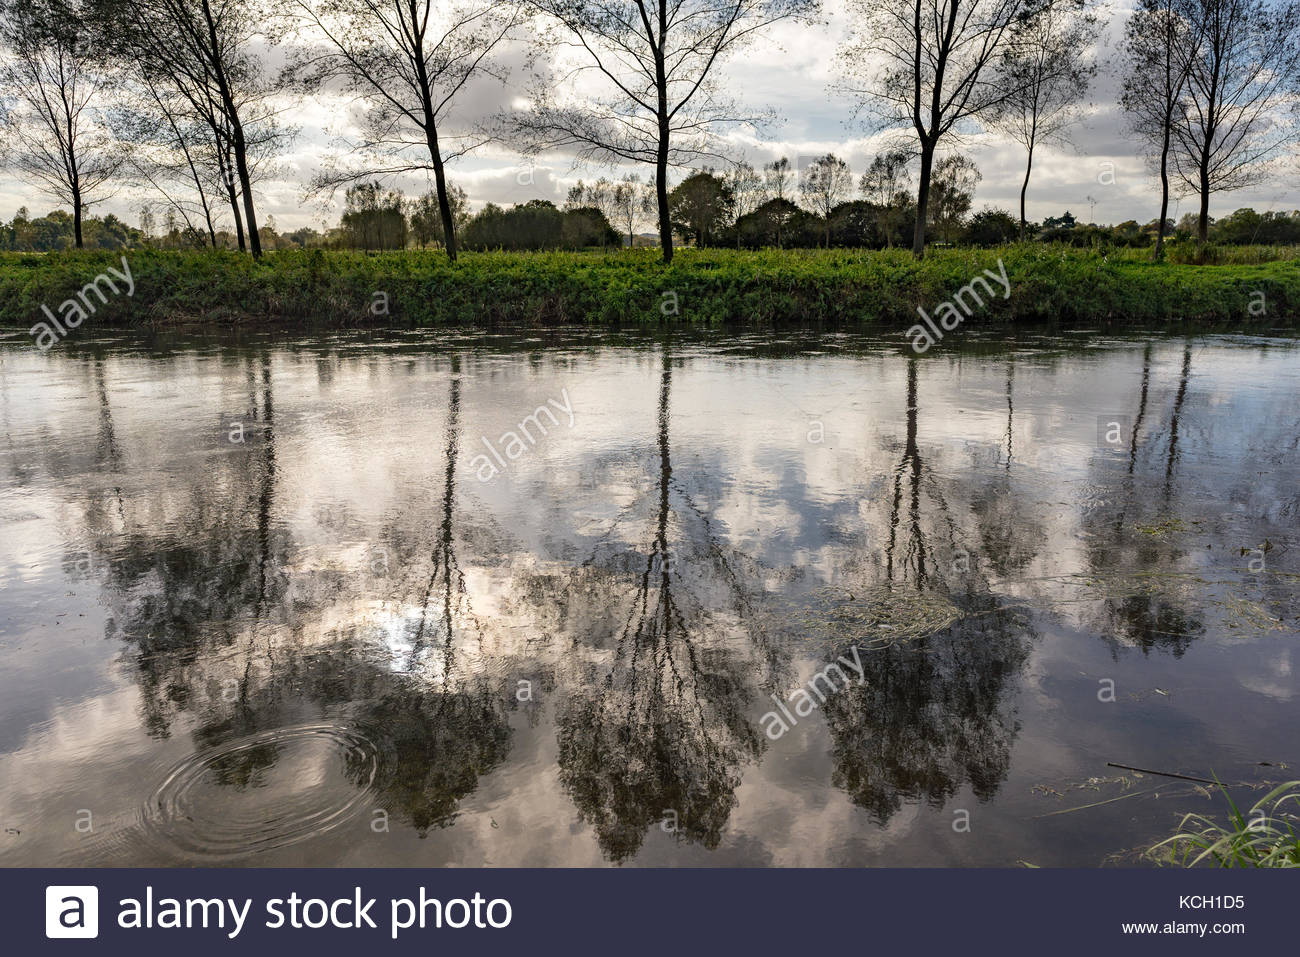 A line of trees on a riverbank reflected in the river water, Avon, Hampshire, UK - Stock Image